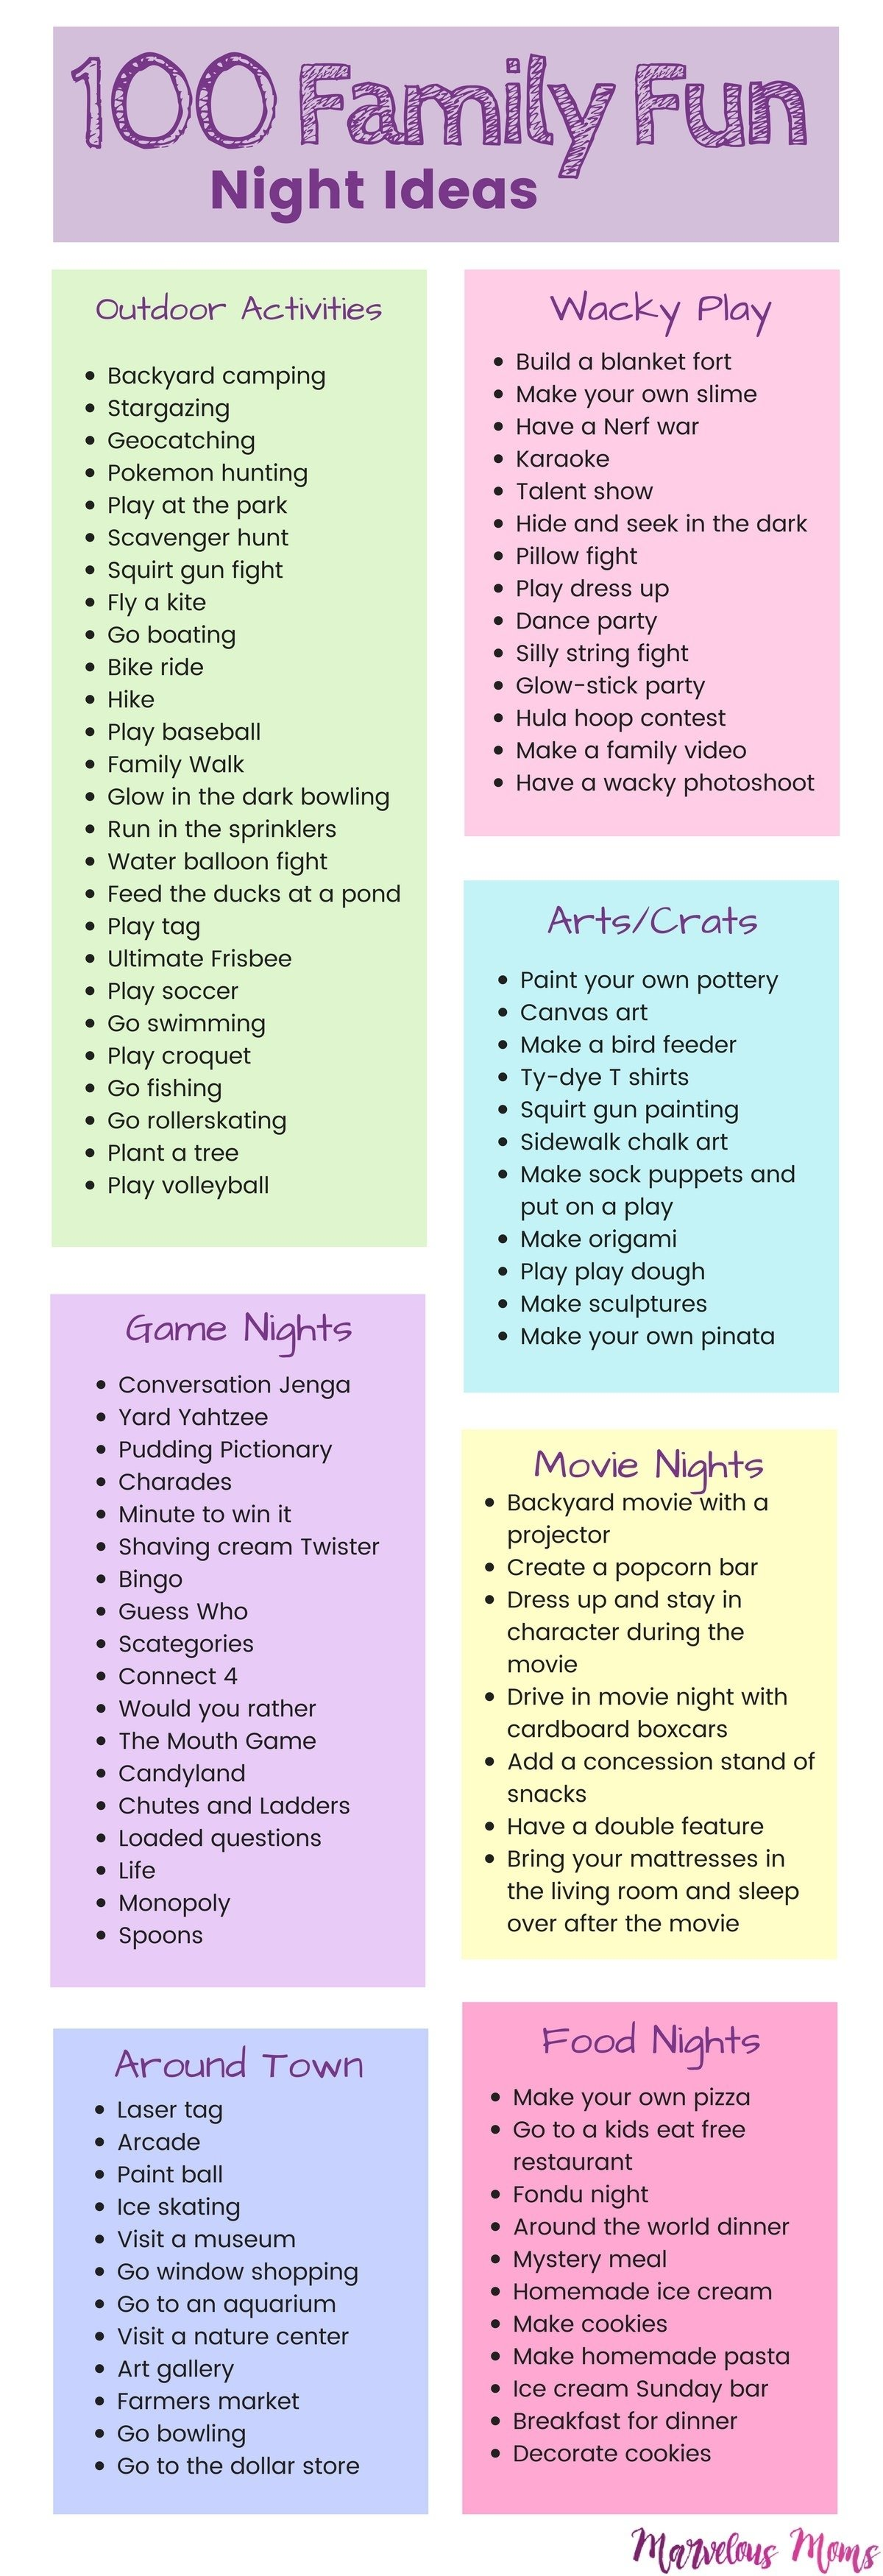 10 Attractive Ideas For Family Game Night 100 family fun night ideas marvelous moms club 2021